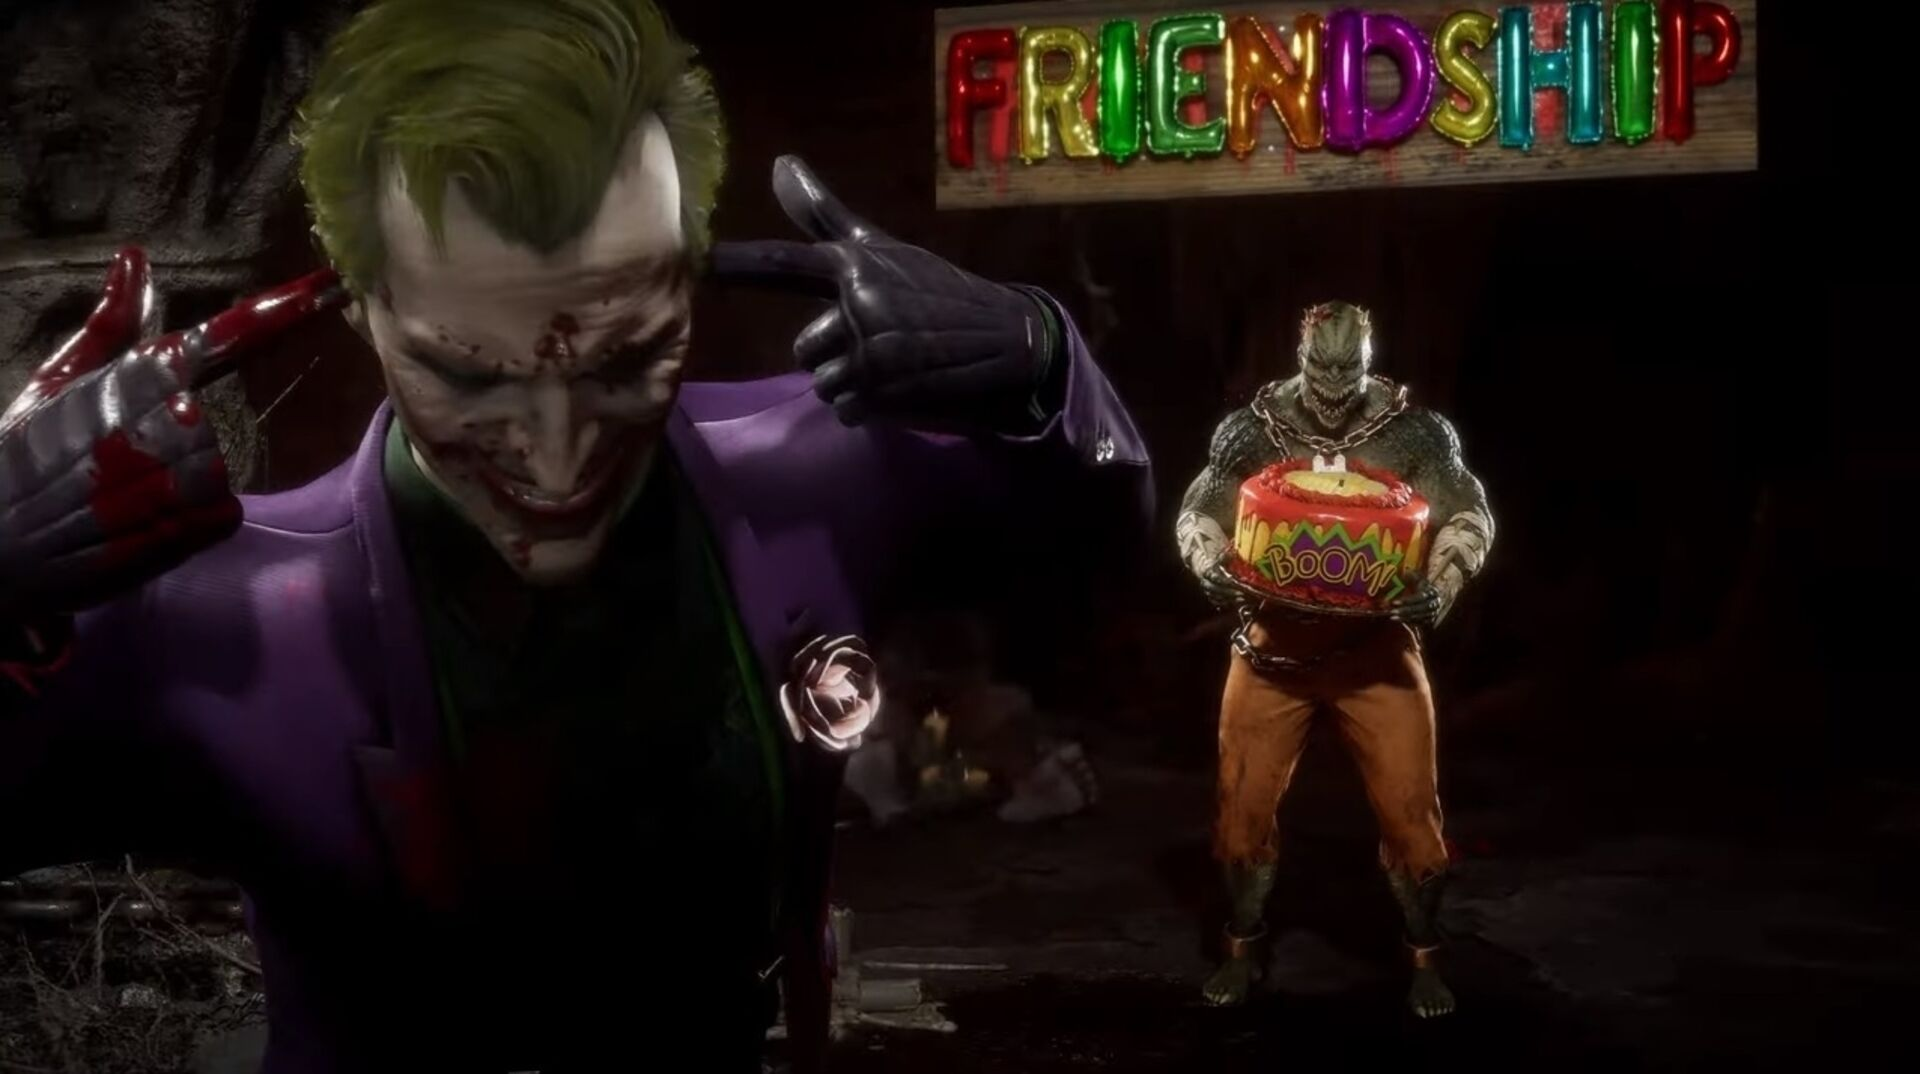 Mortal Kombat 11's Joker brings back Friendship • Eurogamer.net